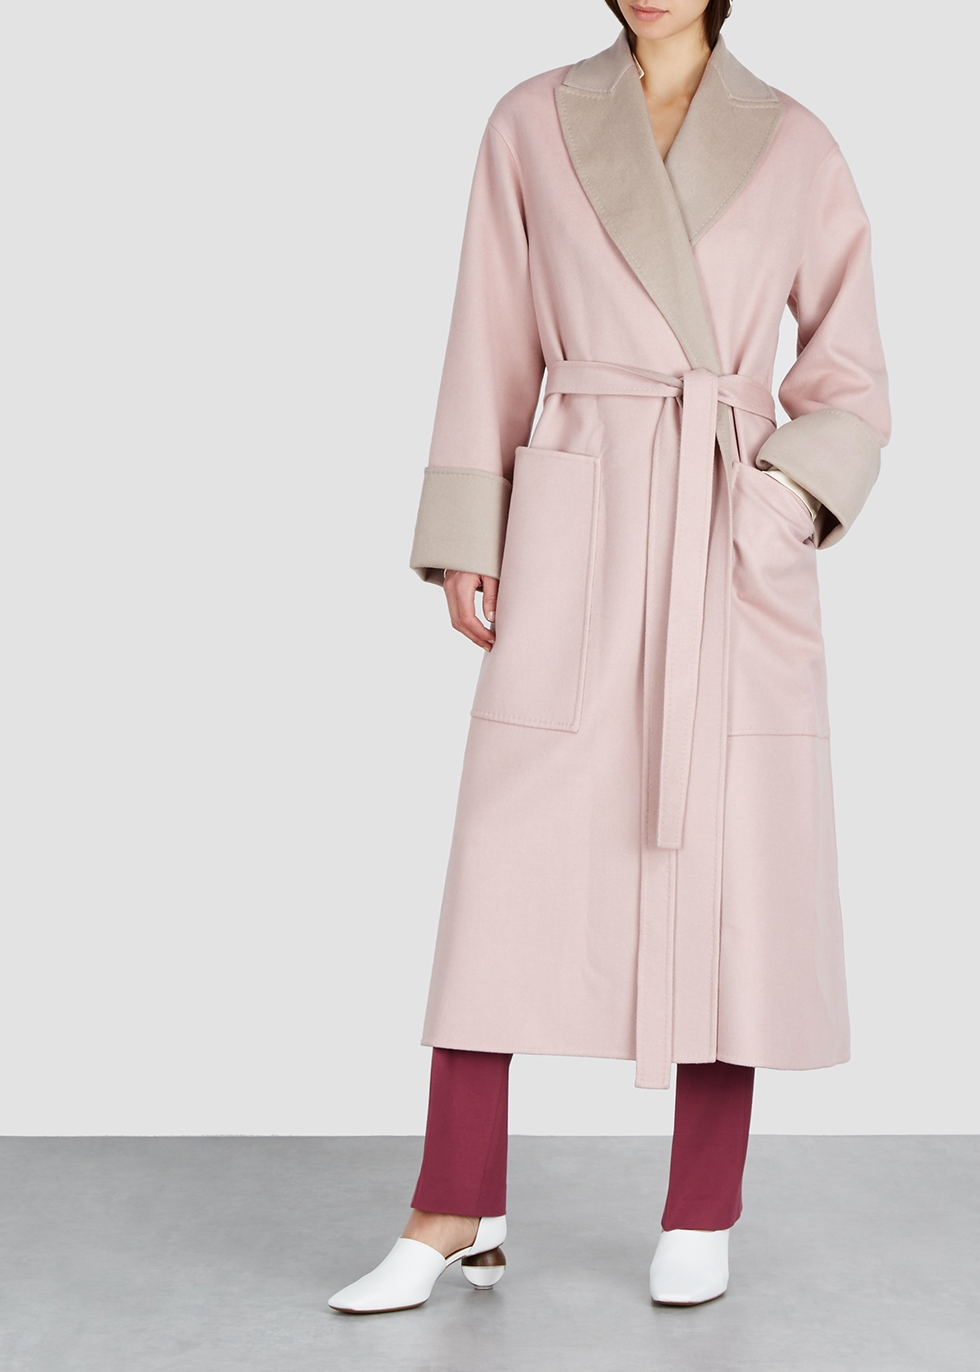 Marley two-tone wool-blend coat - Roksanda